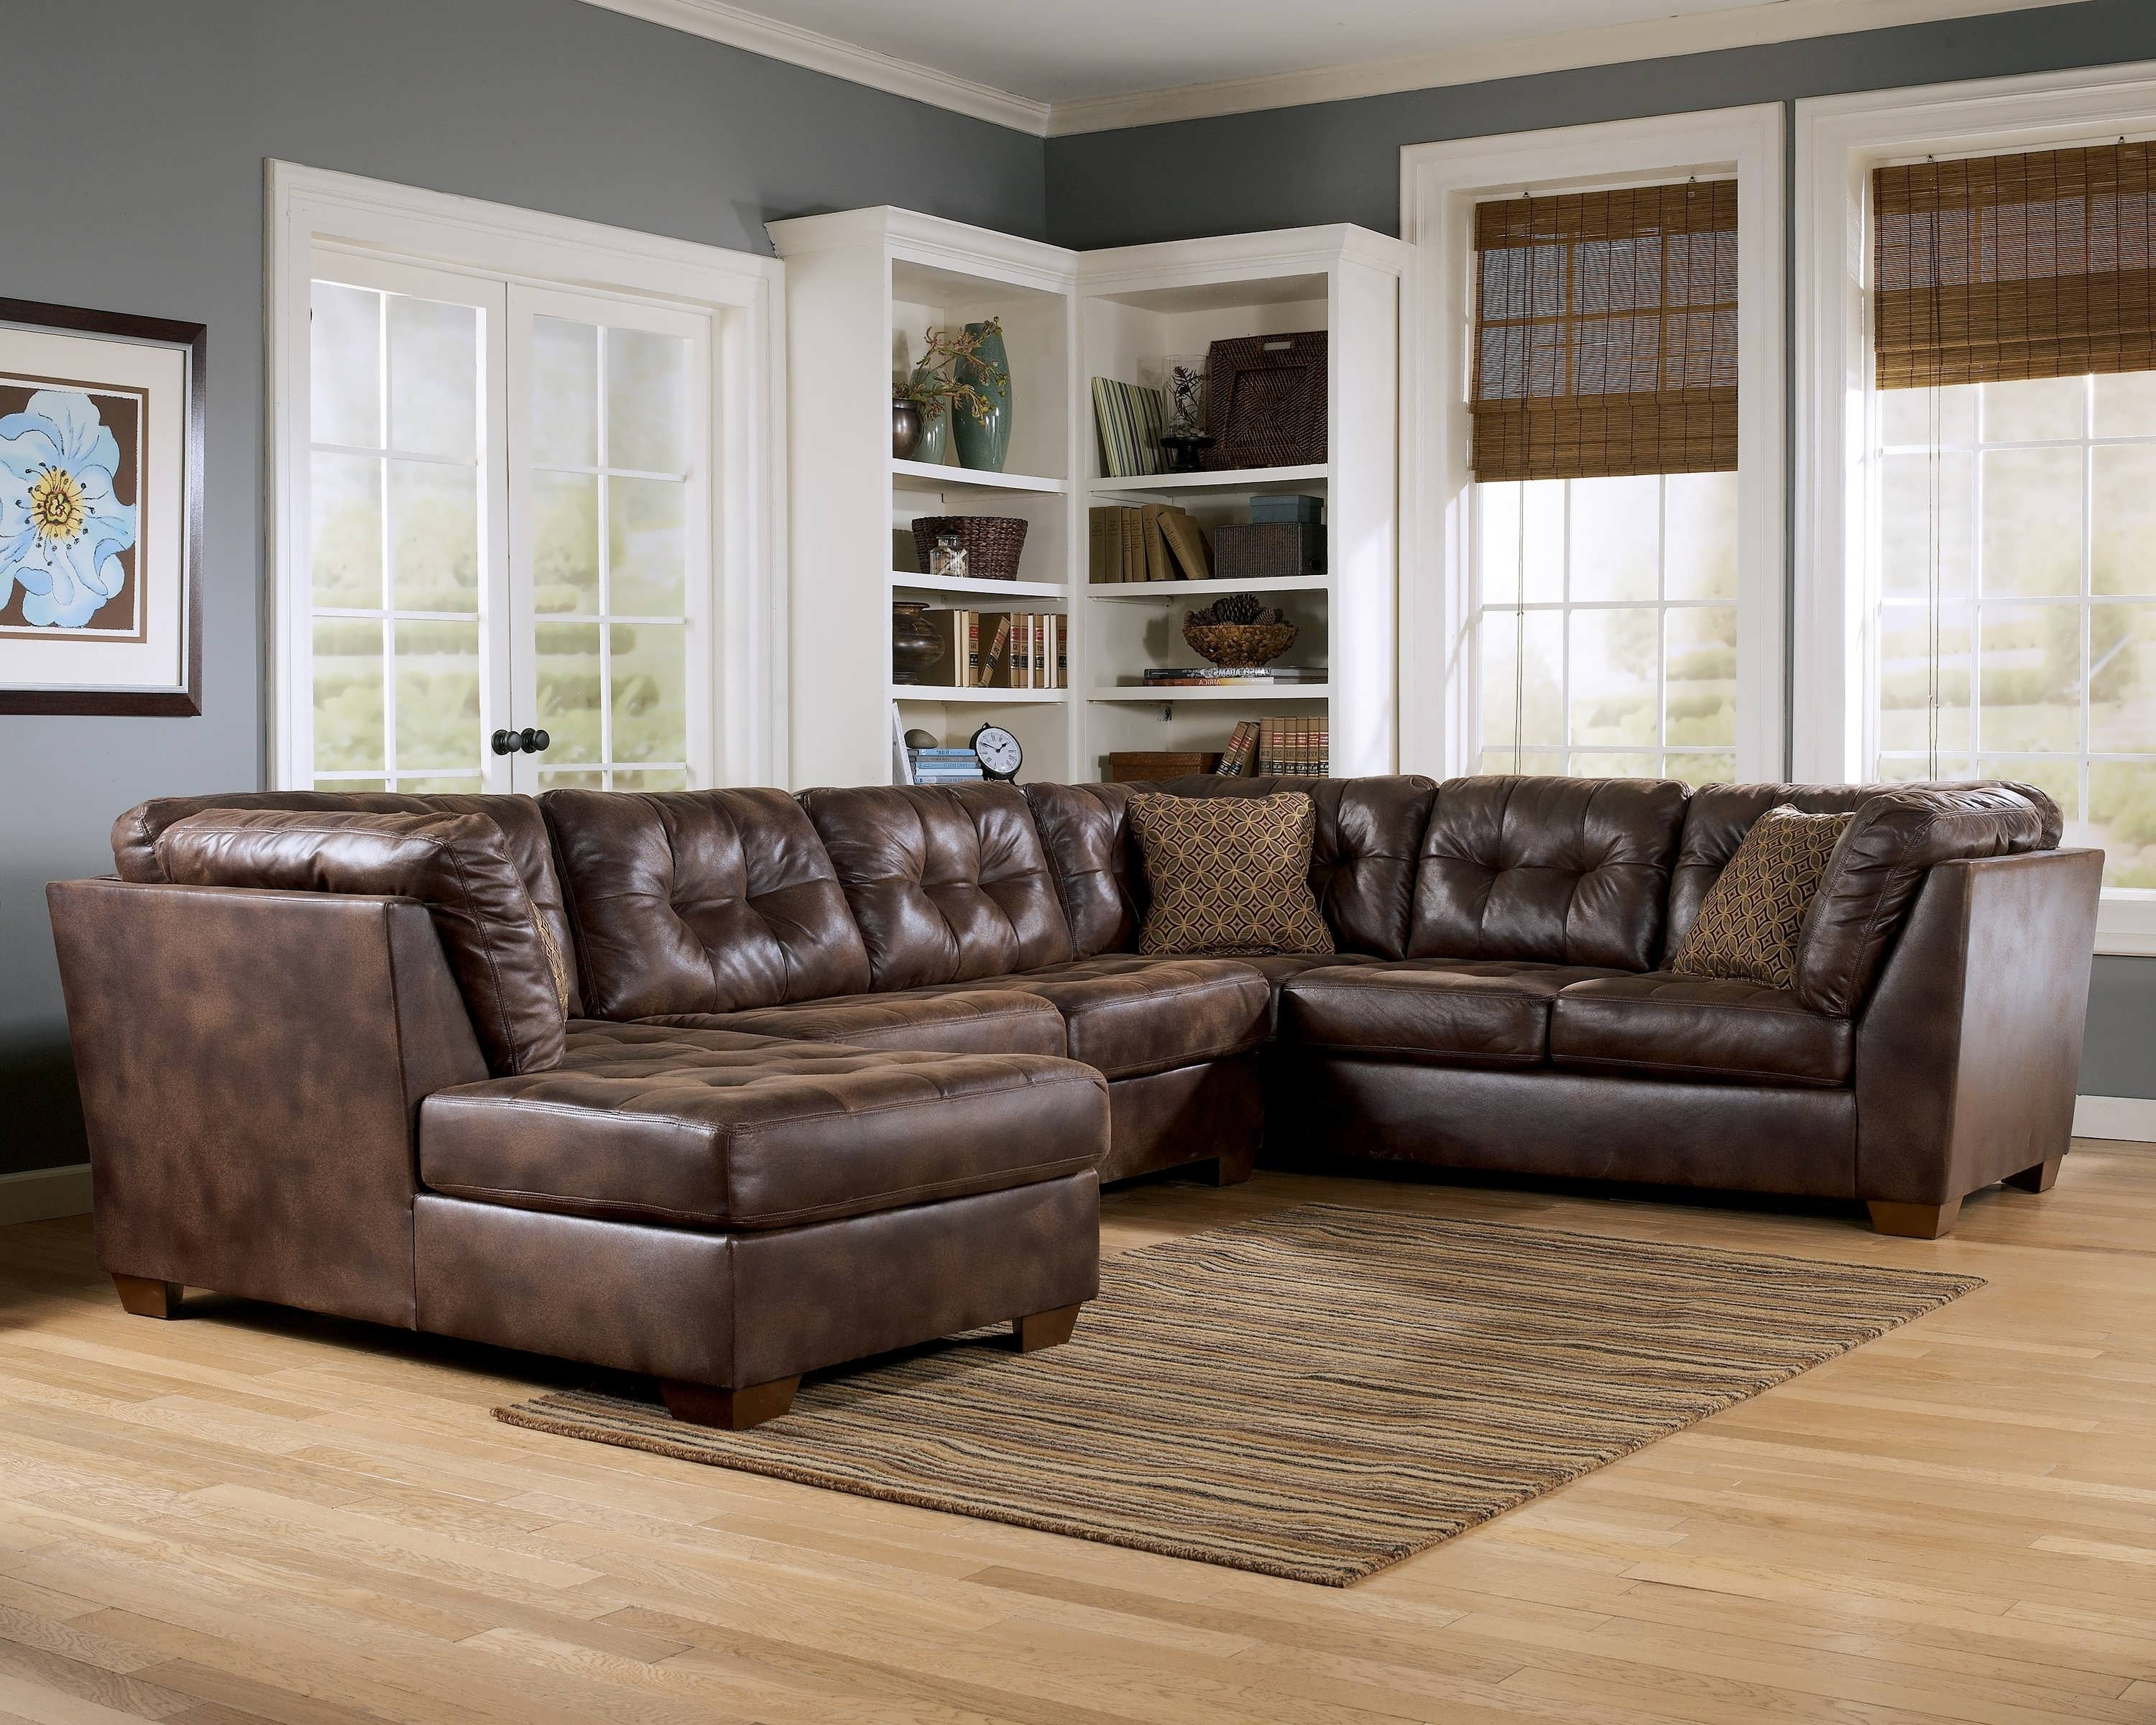 Trendy Sofa Leather Sectional Sofas Collection Of Brown Black Couch For With Regard To Memphis Tn Sectional Sofas (View 12 of 15)